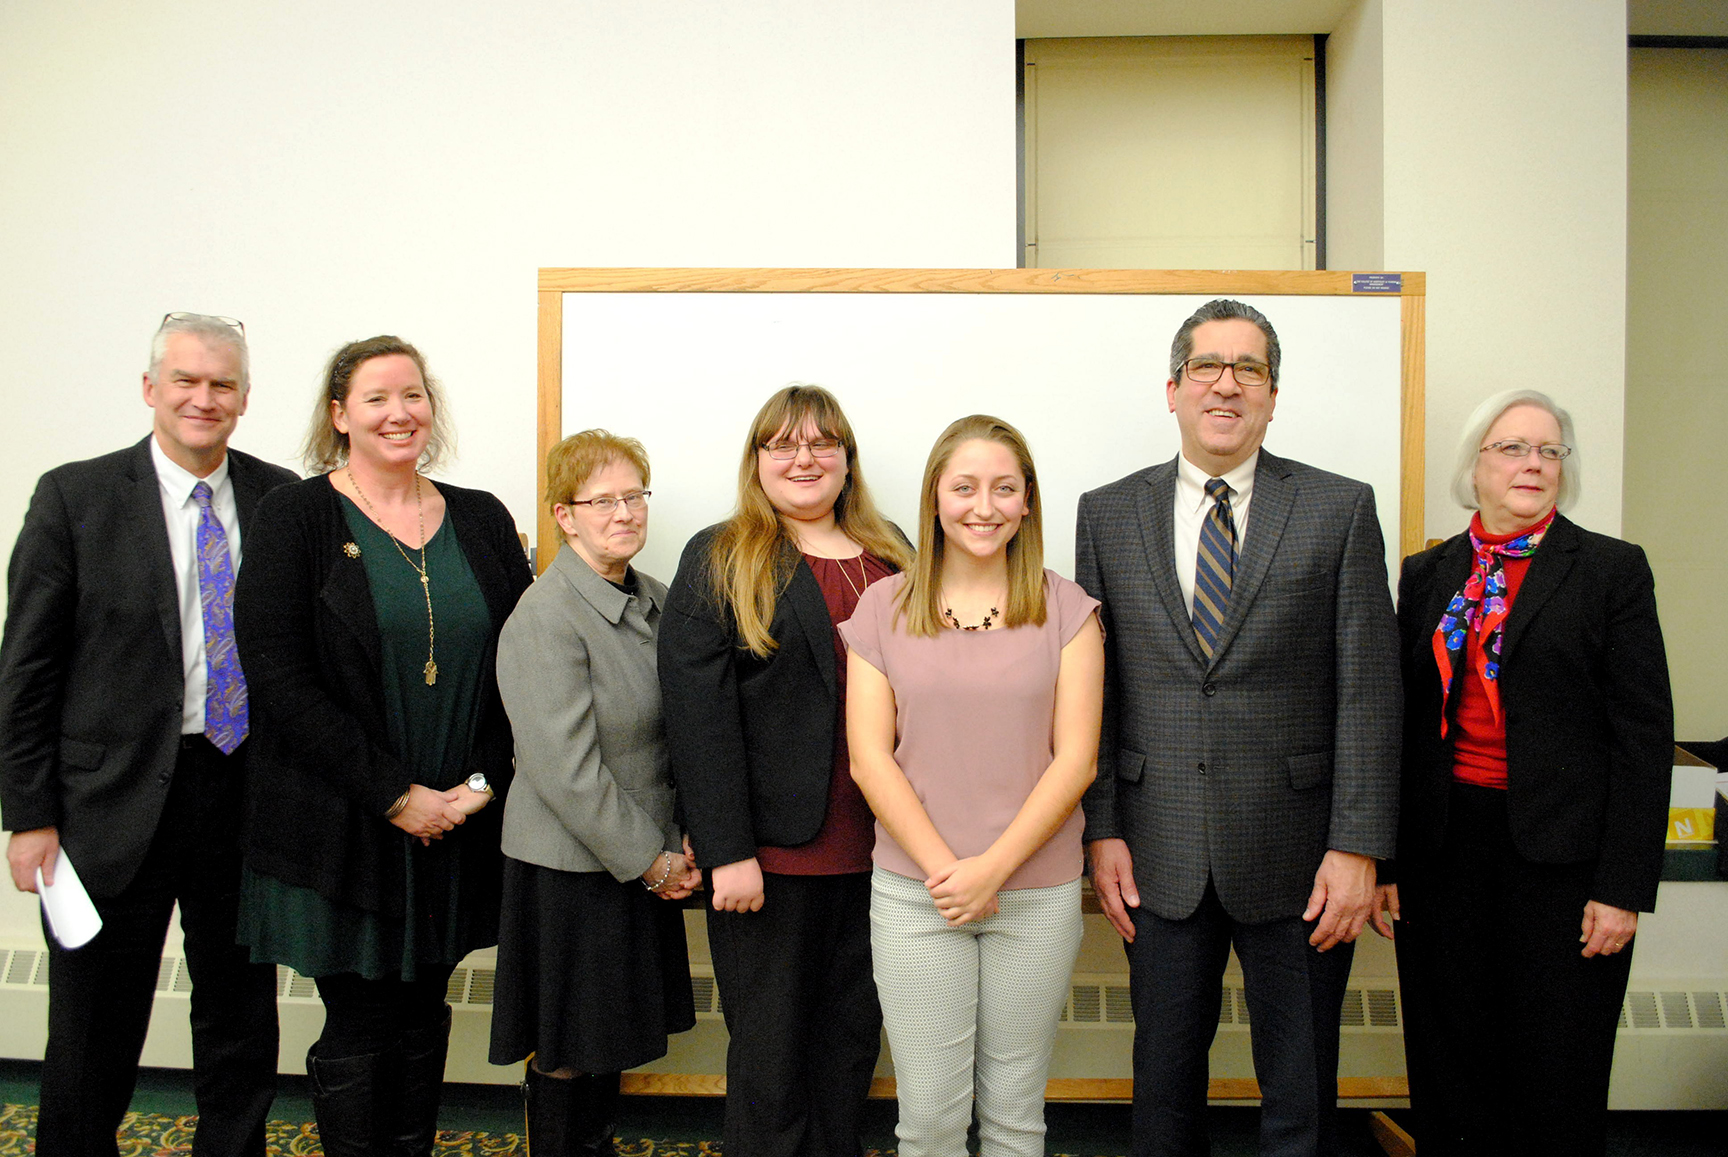 Niagara Students Win Annual Susan B. Anthony Writing Contest